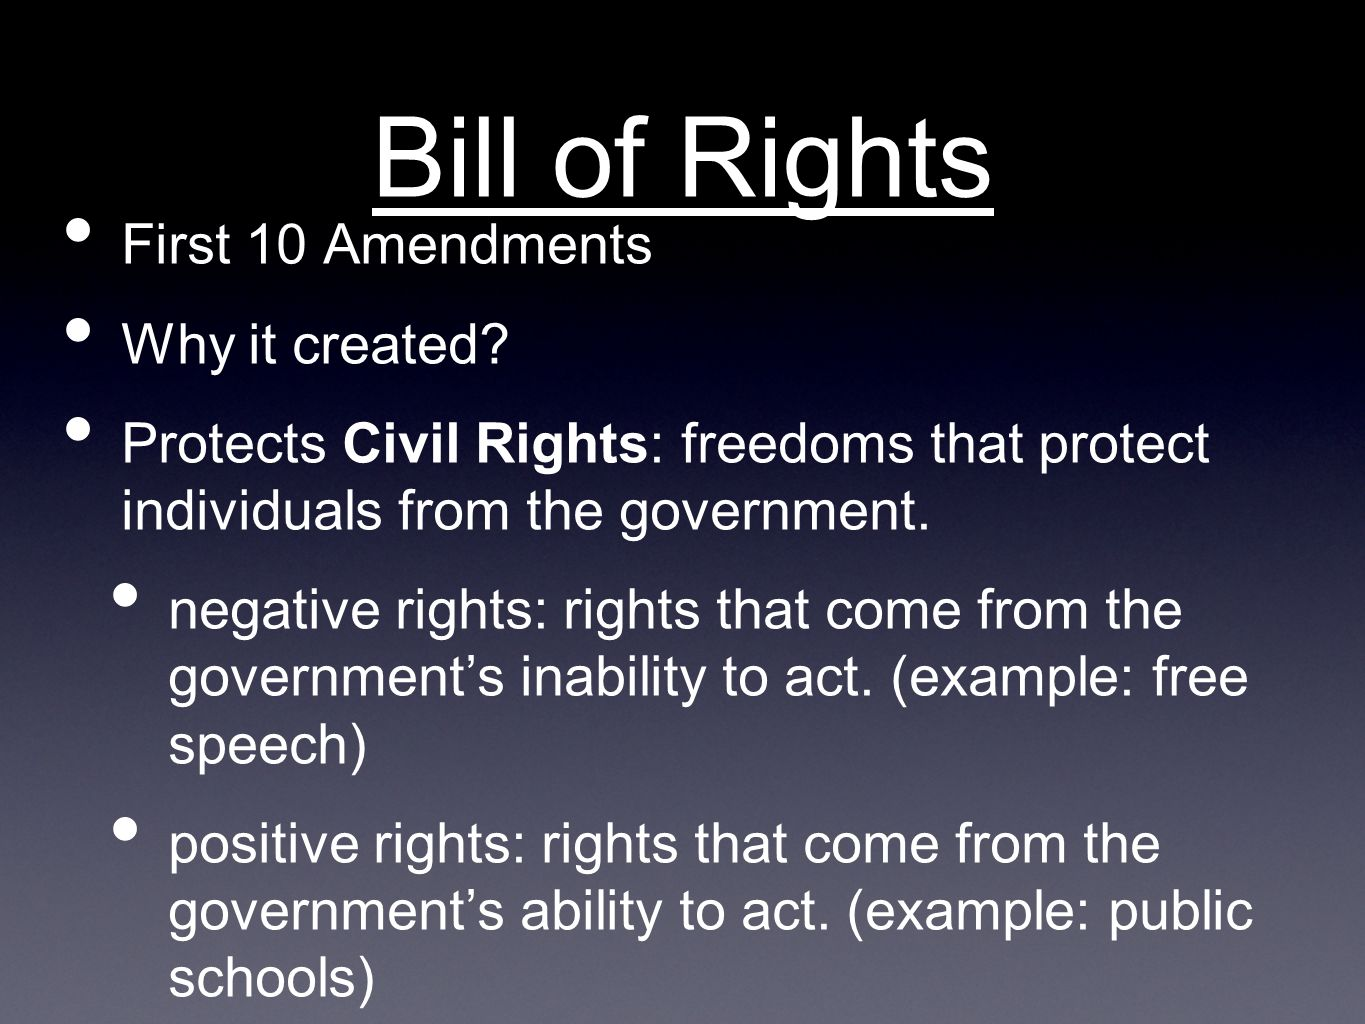 Bill of Rights First 10 Amendments Why it created? Protects Civil Rights: freedoms that protect individuals from the government. negative rights: righ